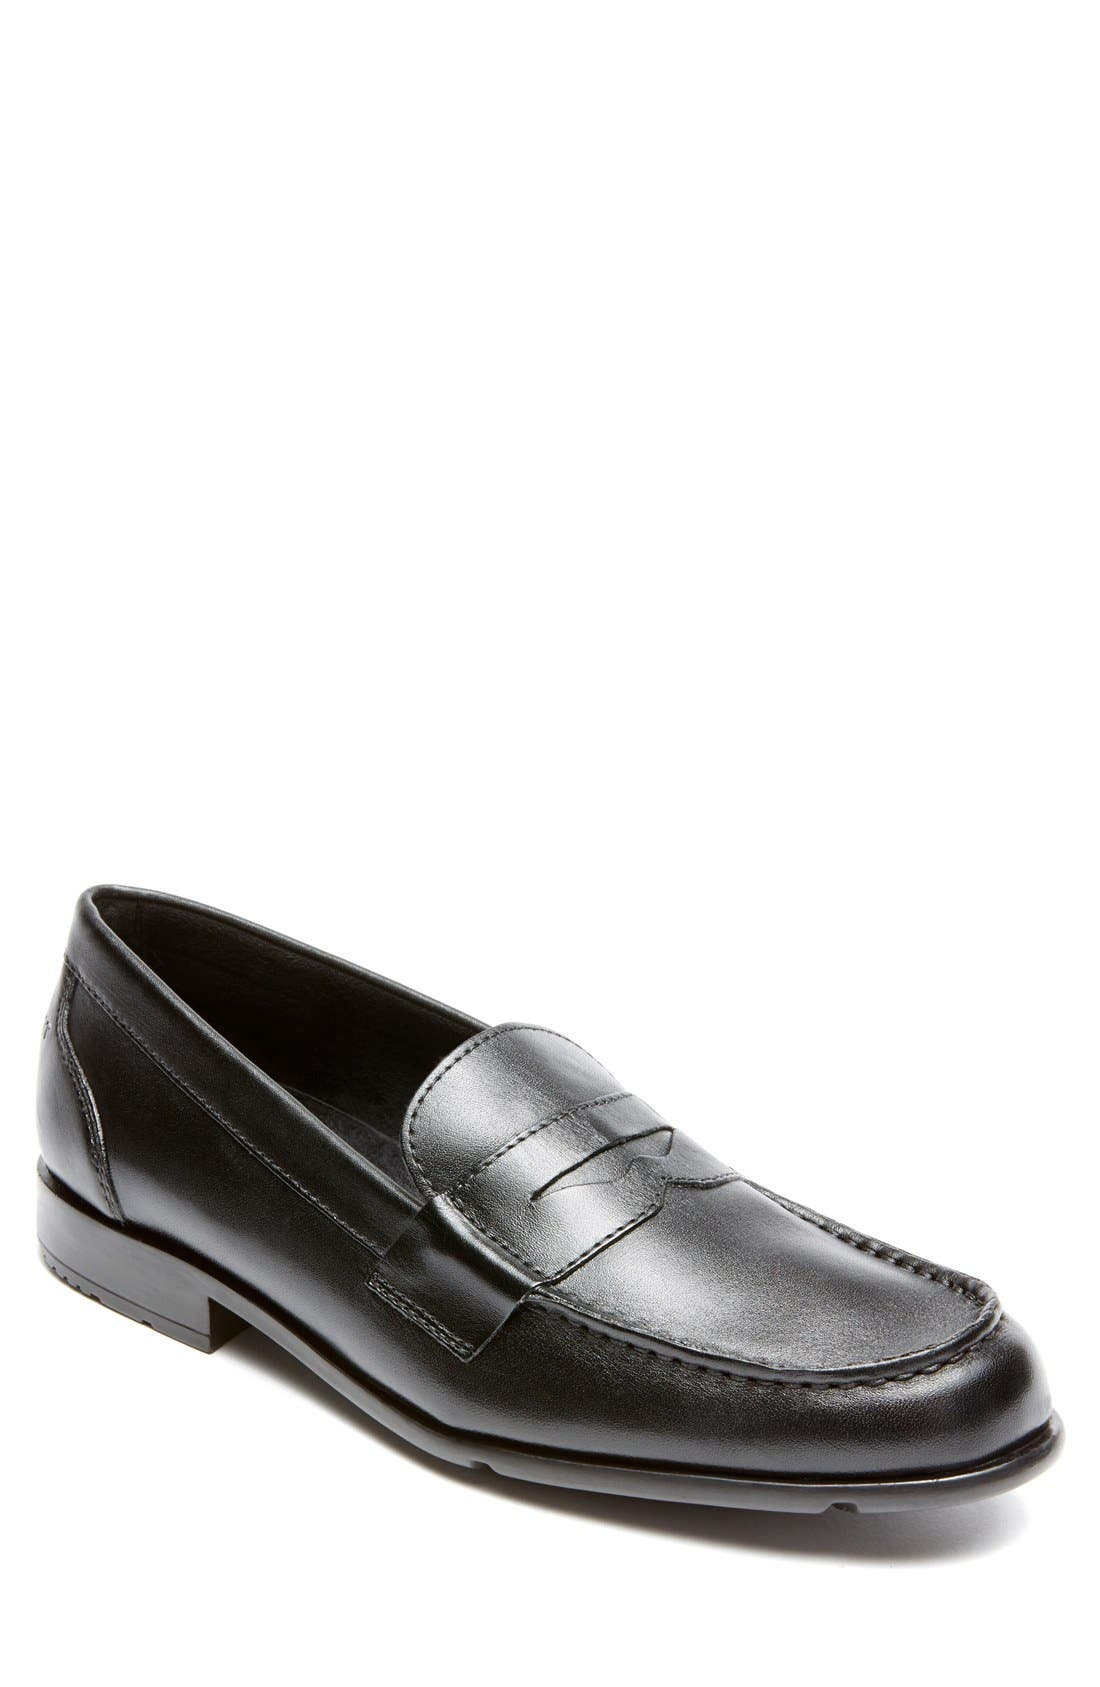 Leather Penny Loafer,                             Main thumbnail 1, color,                             BLACK